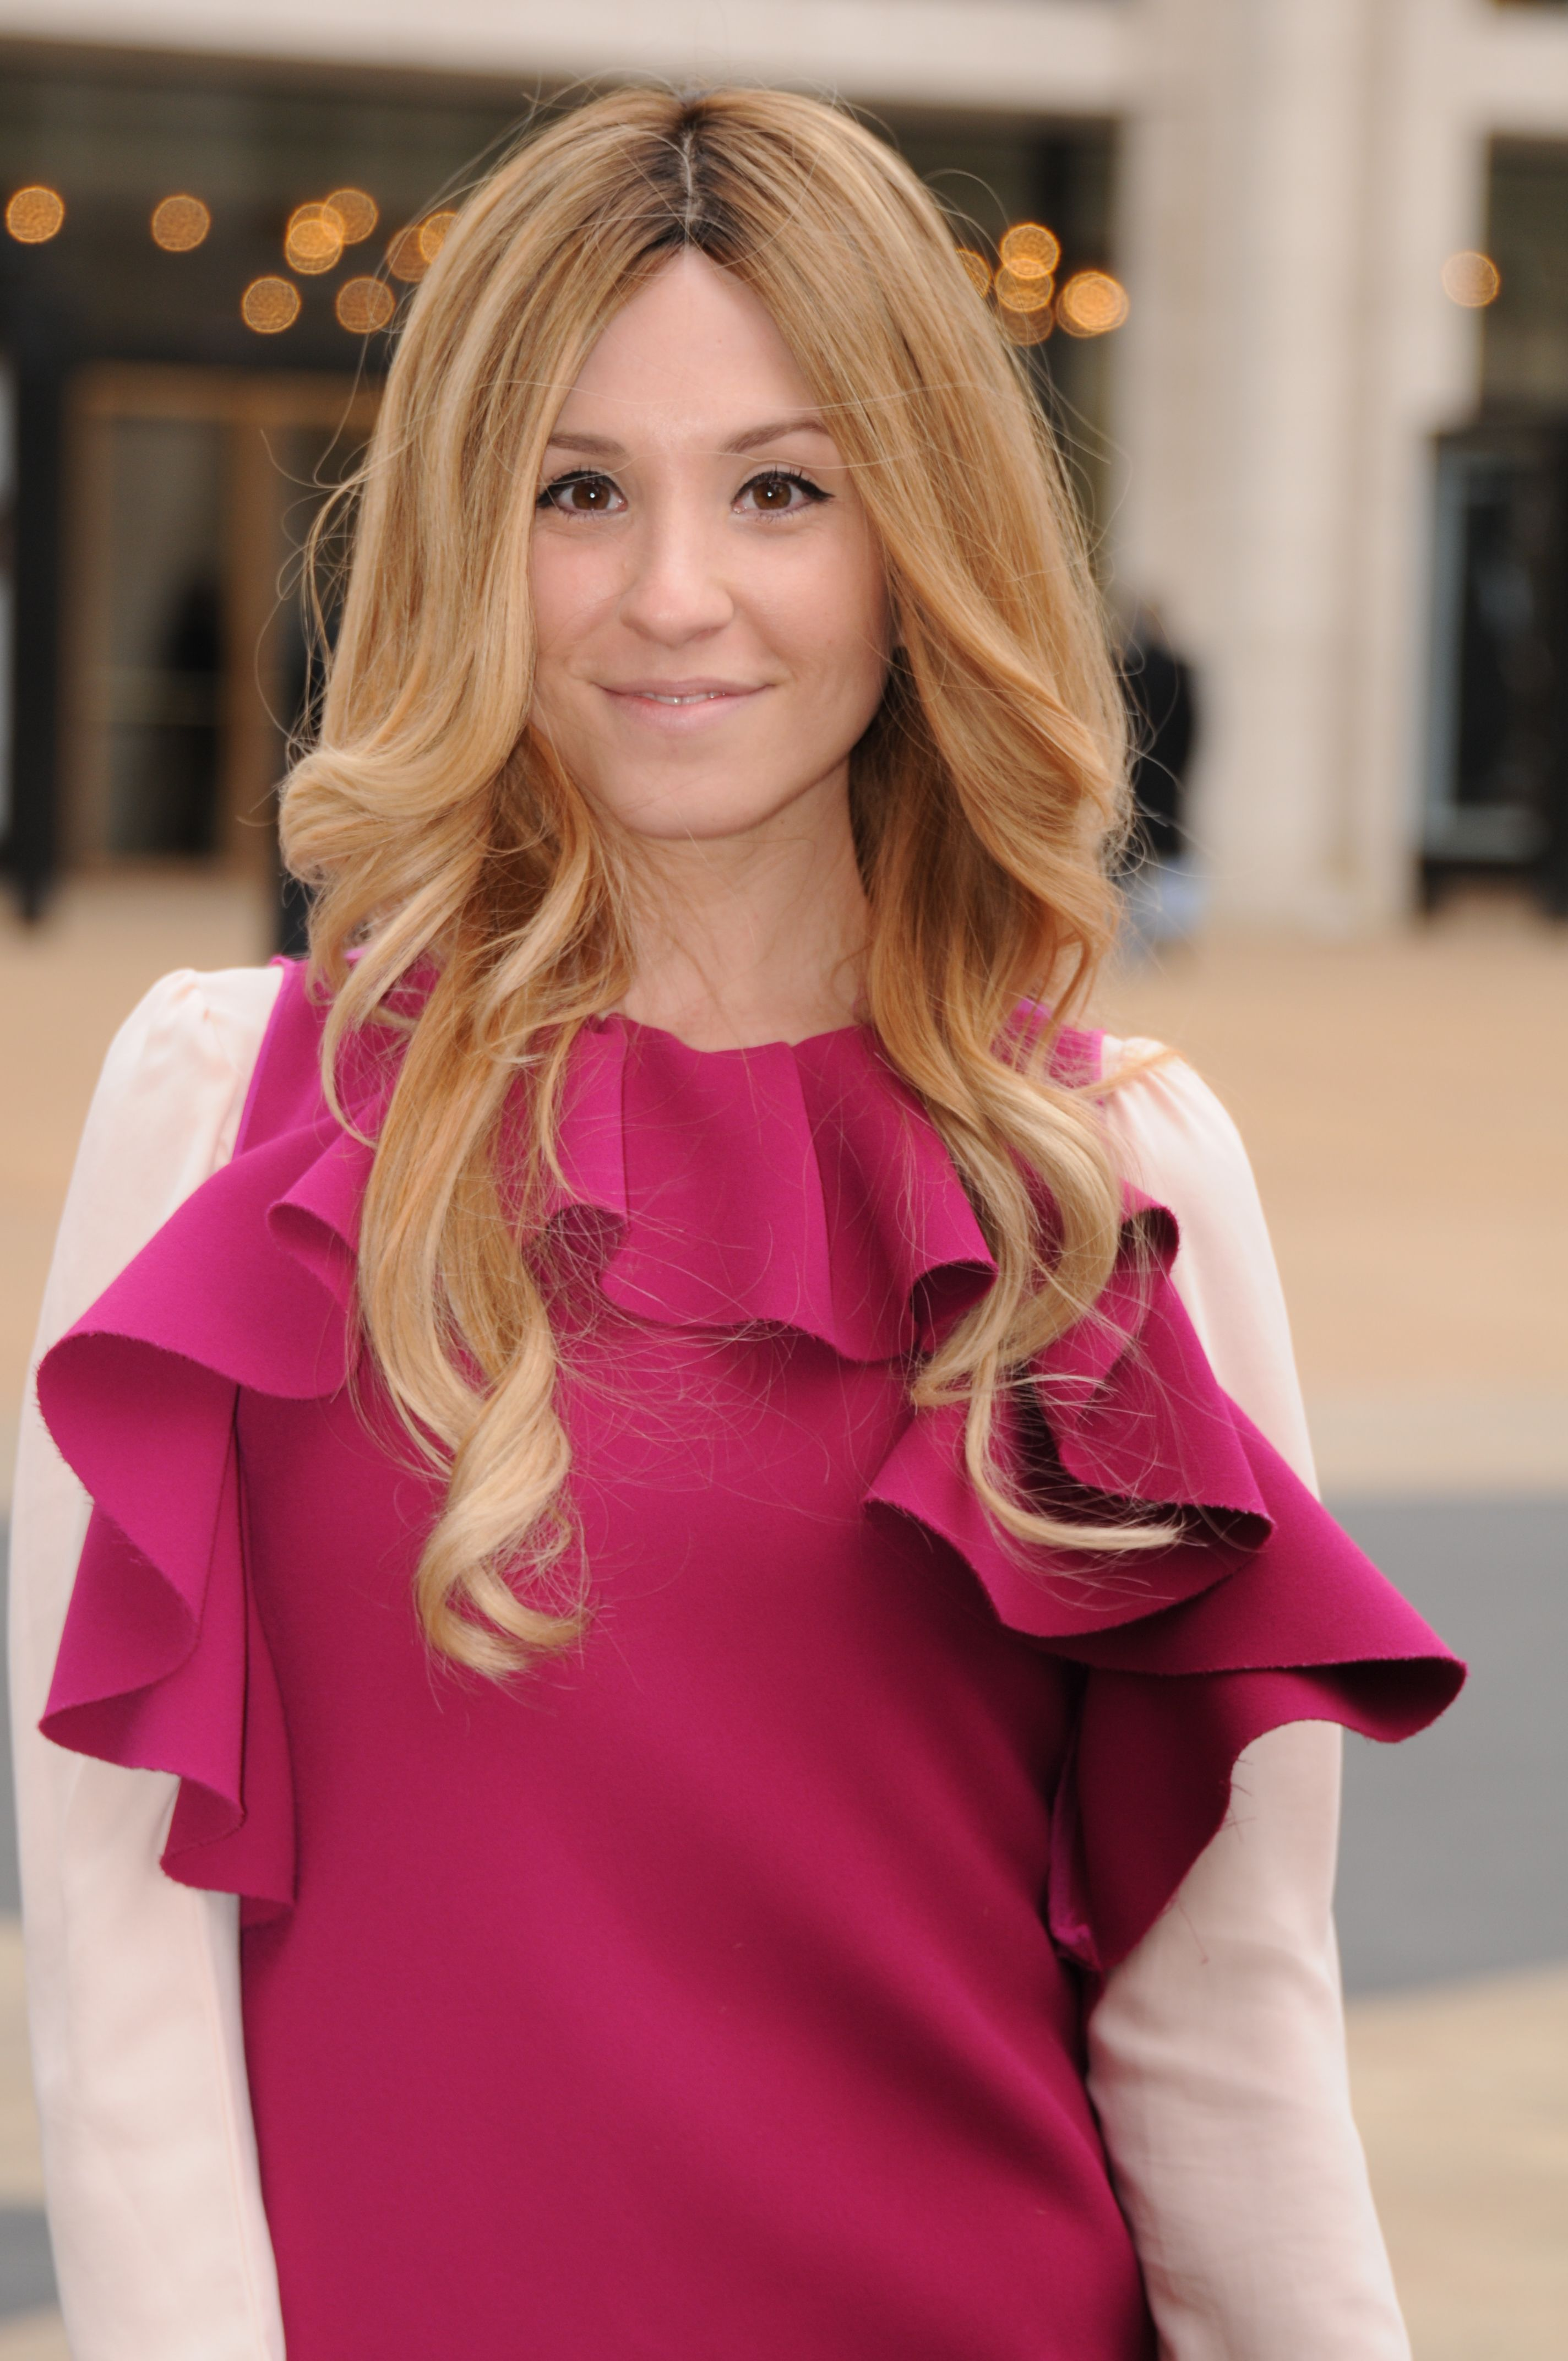 Vintage DVF Ruffle dress worn with a light pink silk blouse. This was outside Lincoln Center during February 2014 MBFW.